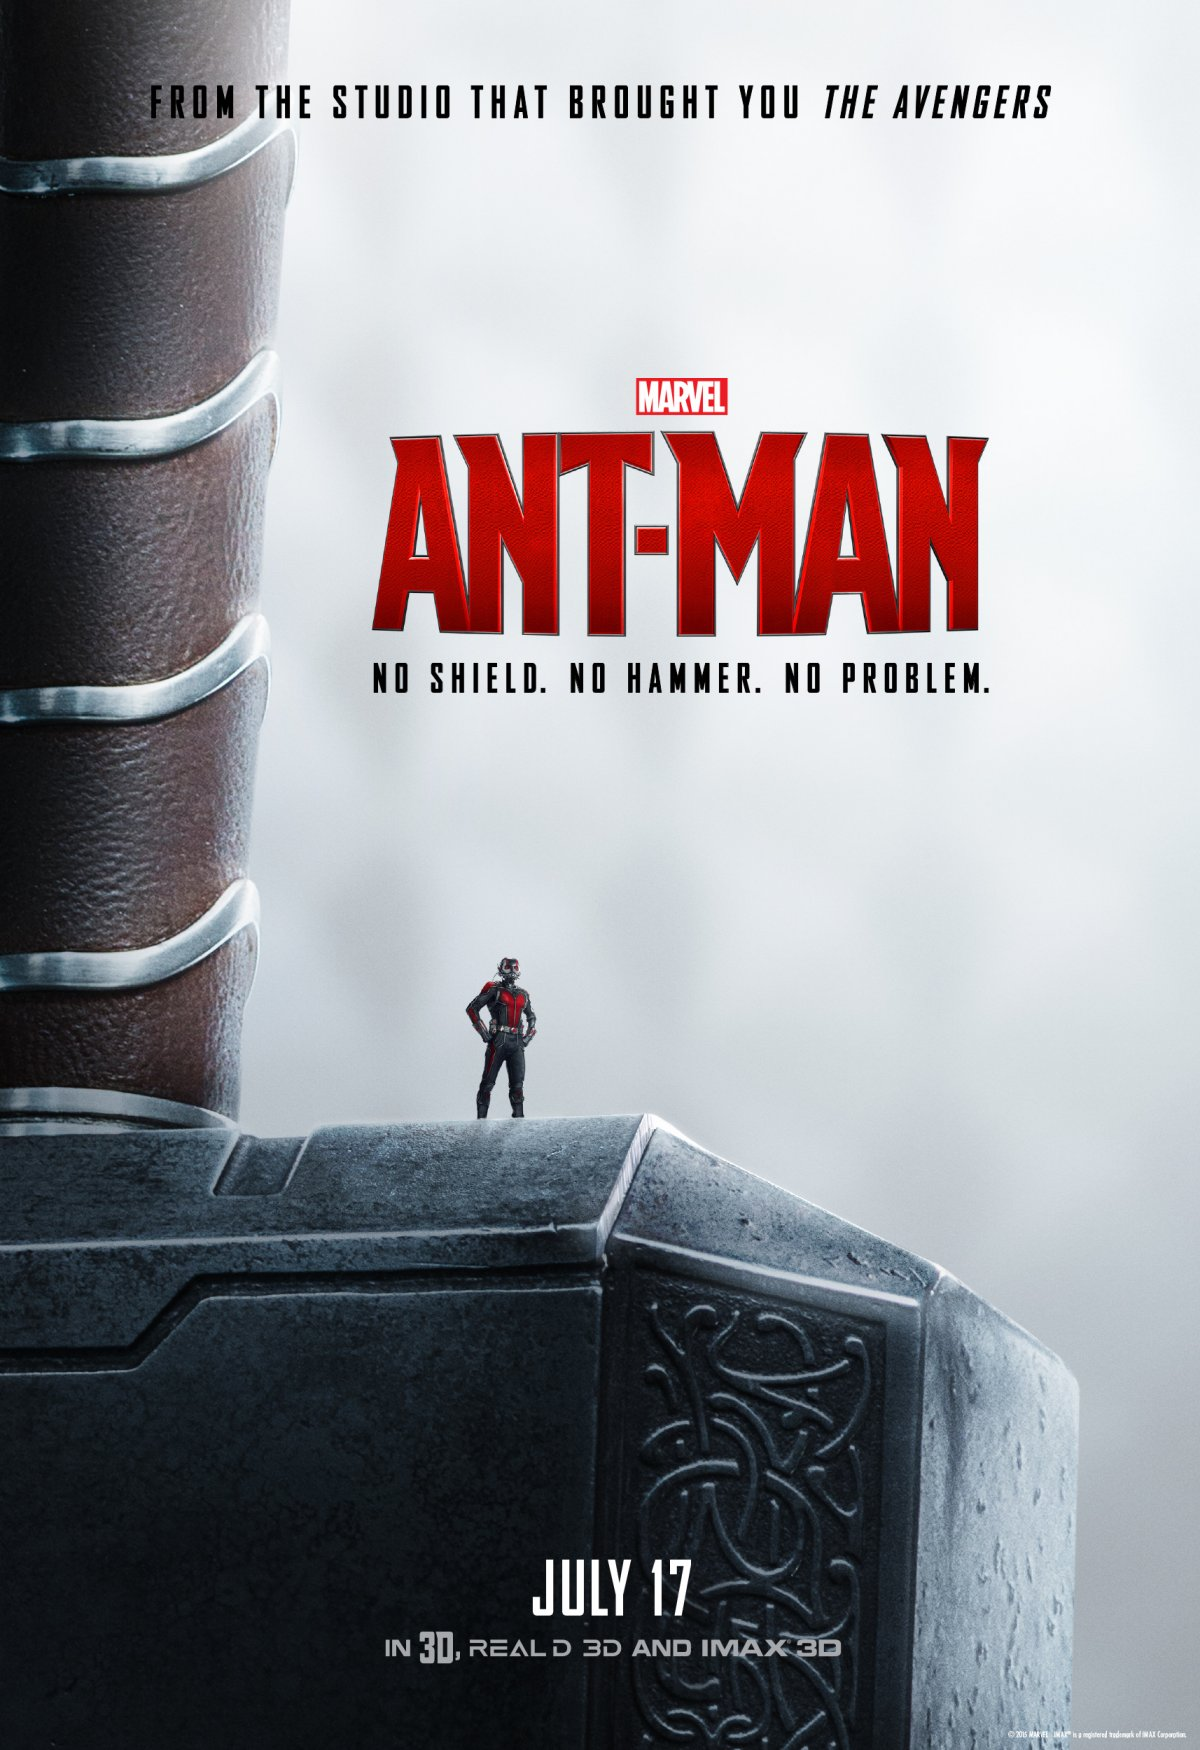 Ant-Man – The STiXXclusive Review